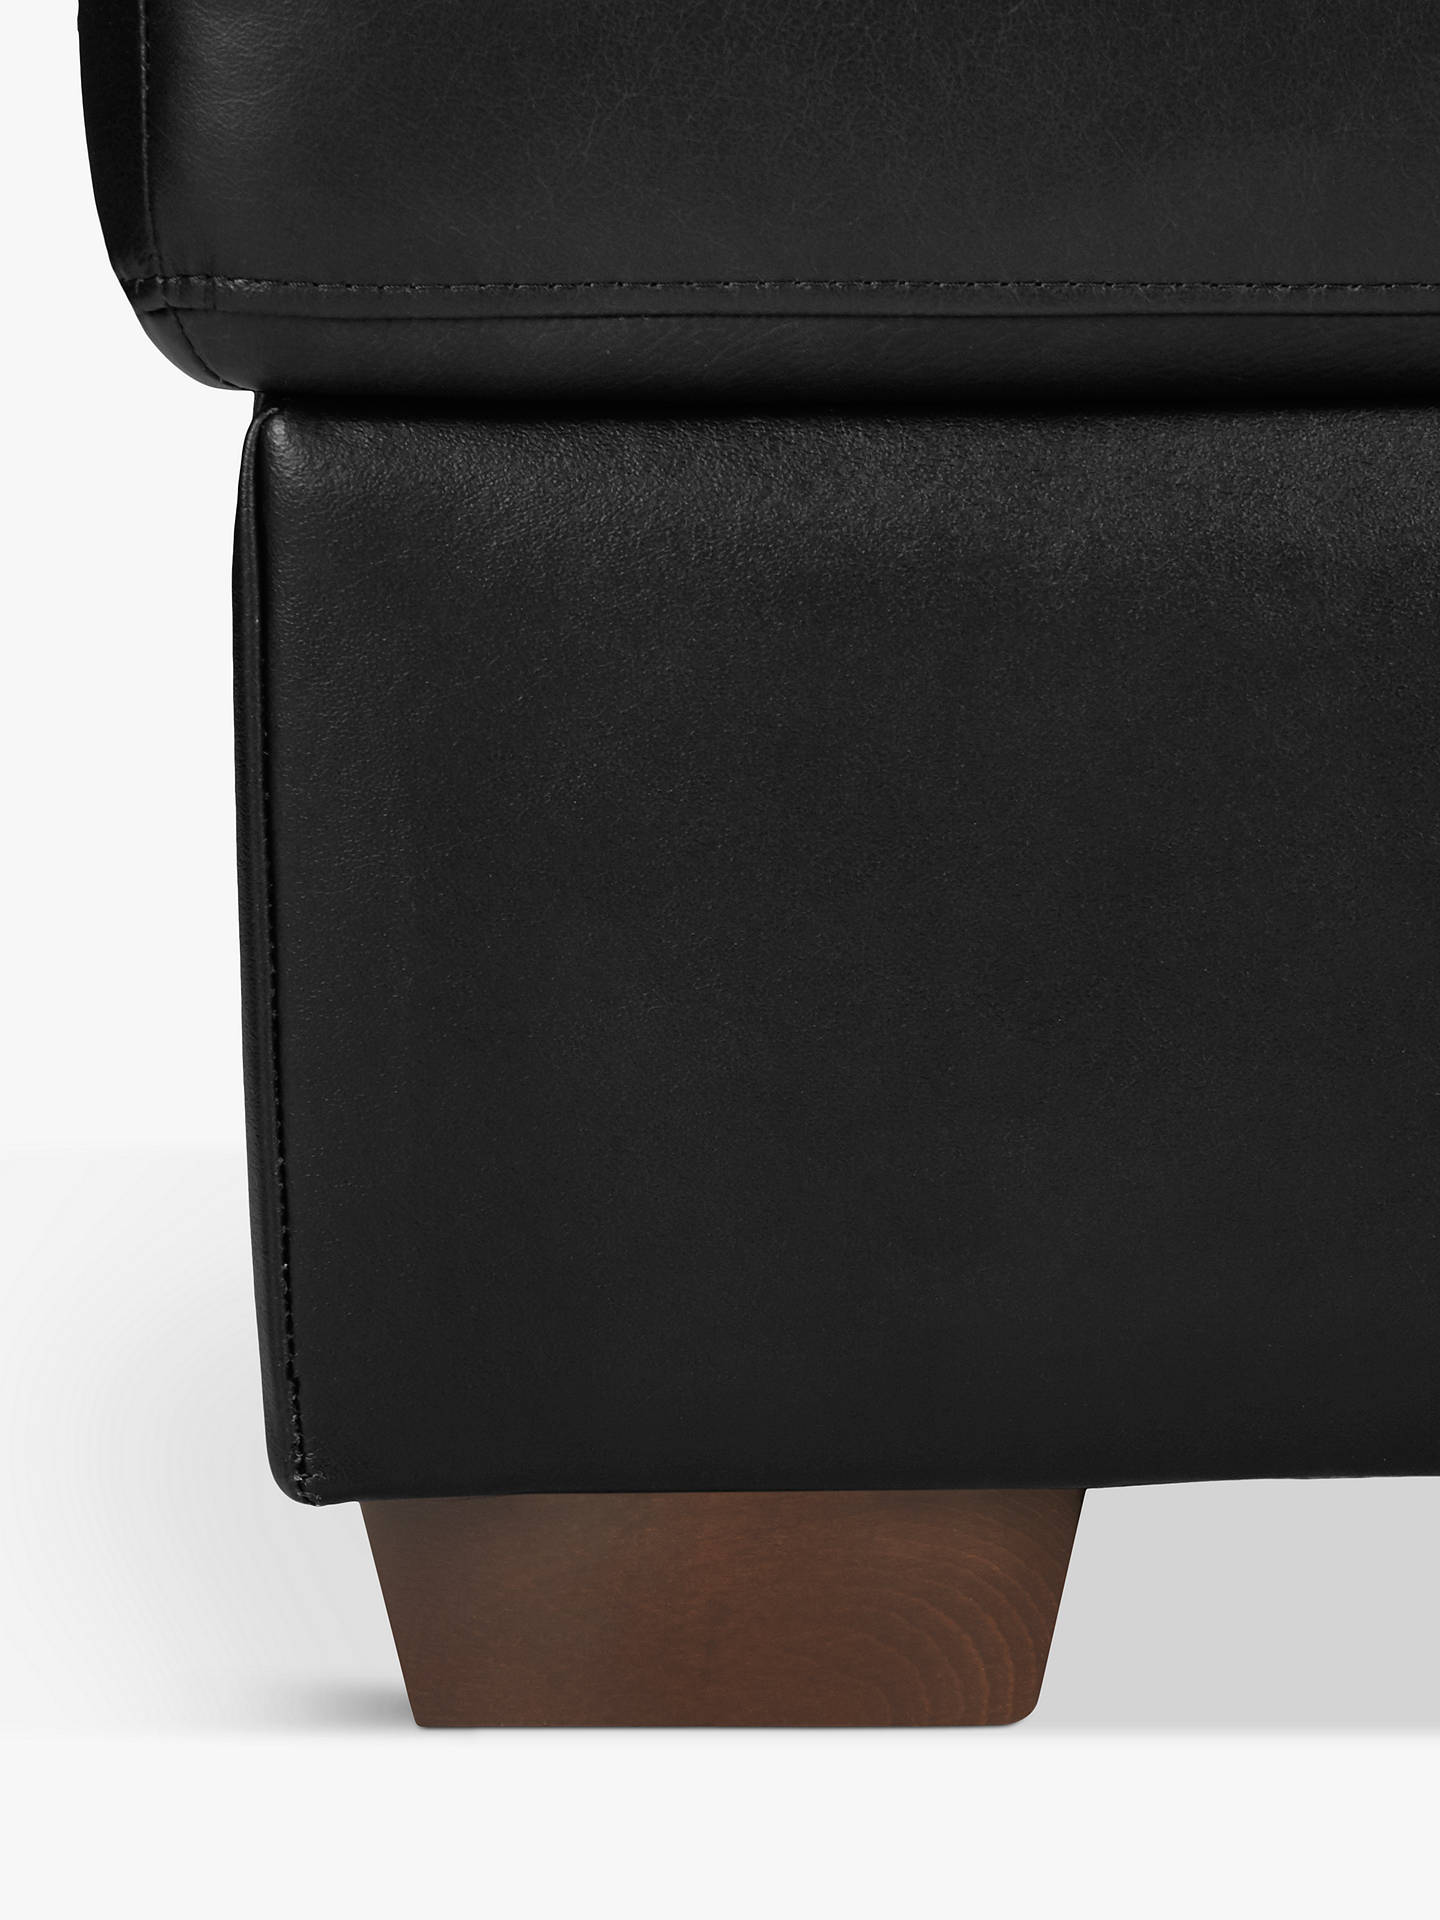 Buy John Lewis & Partners Camden Leather Storage Footstool, Dark Leg, Contempo Black Online at johnlewis.com